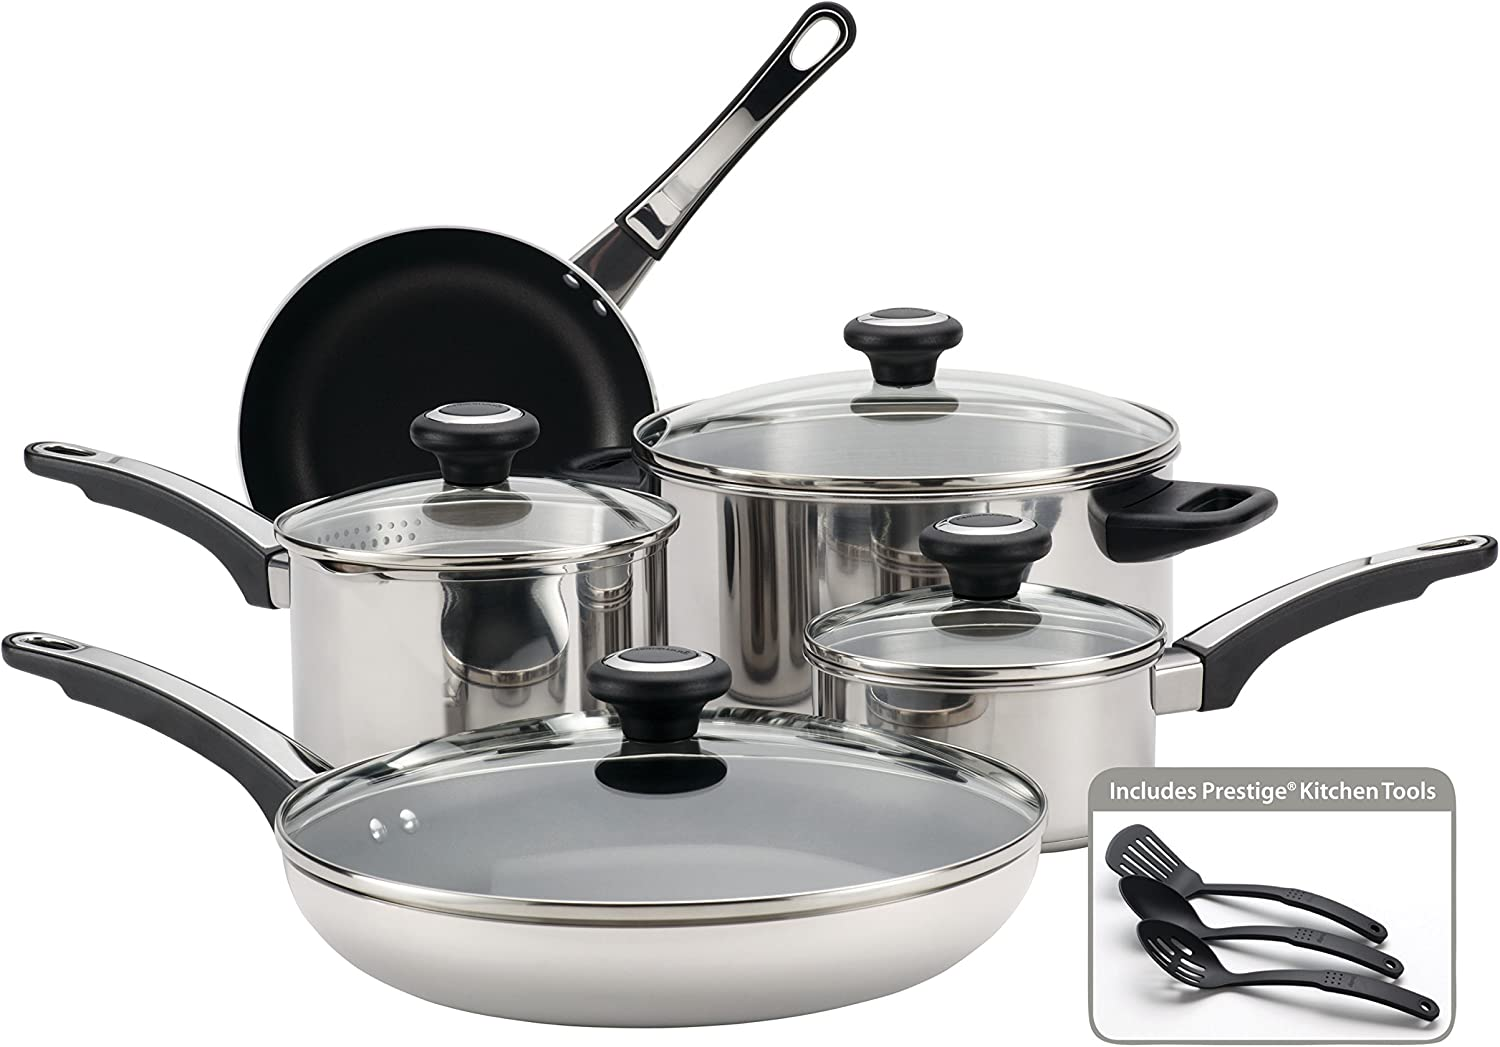 Farberware High Many popular brands Performance Stainless Steel and Cookware Pa Pots 2021new shipping free